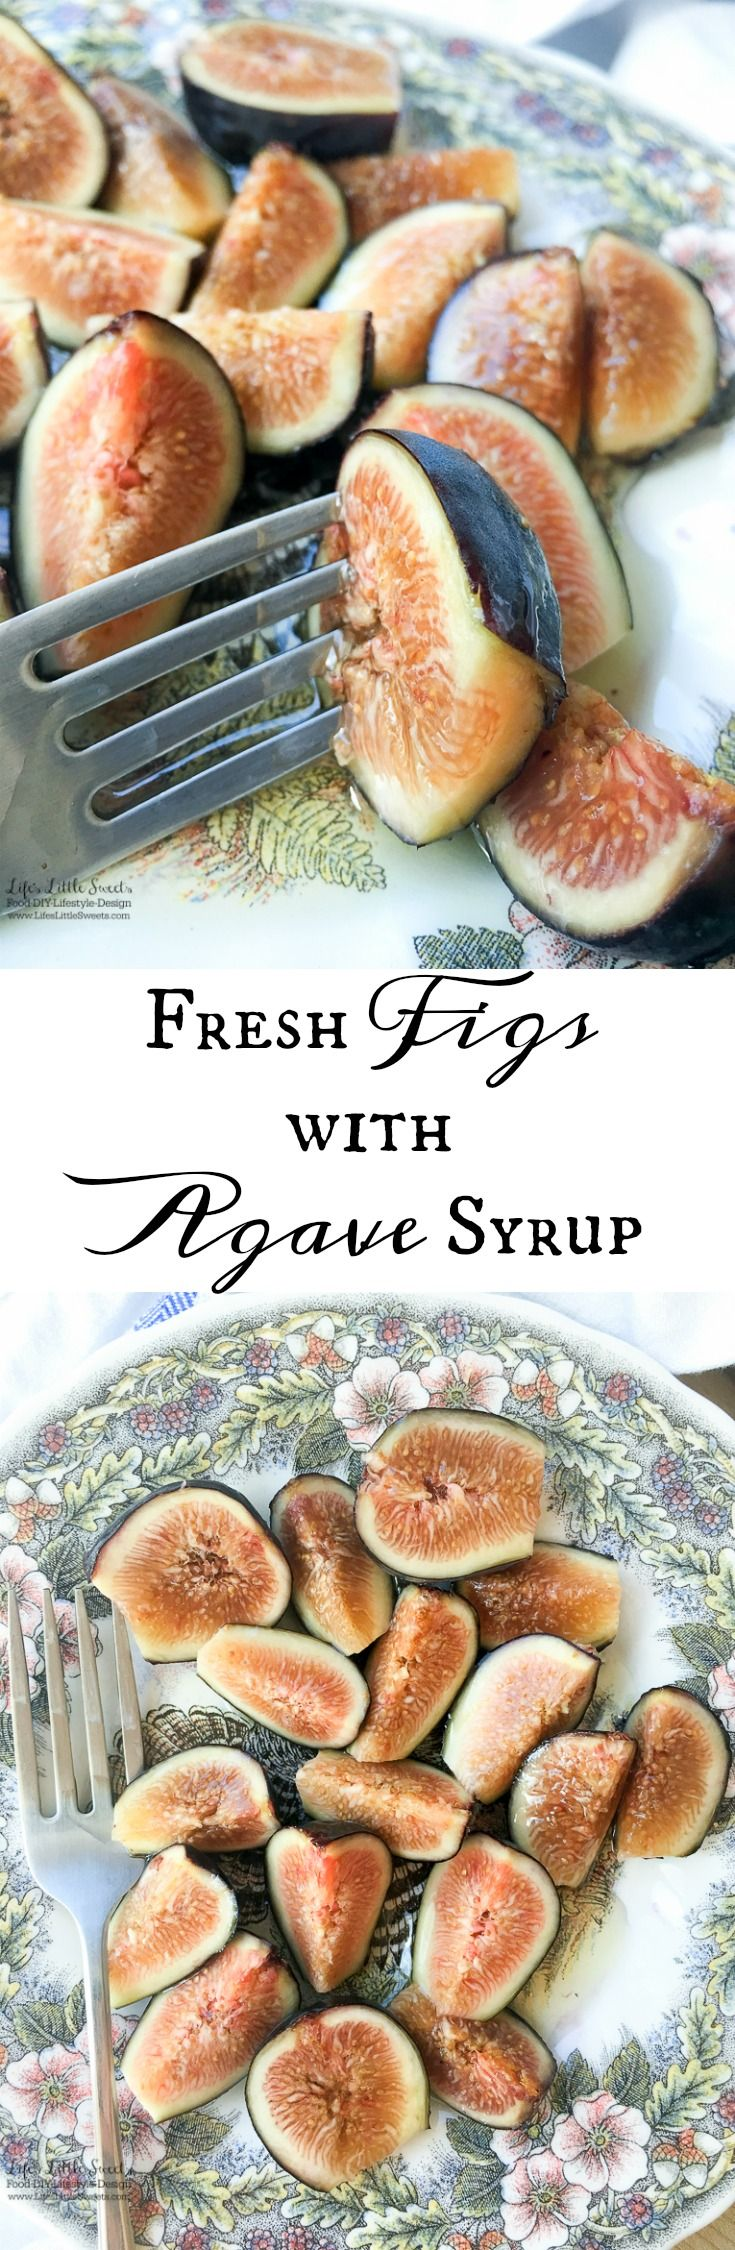 Fresh Figs with Agave Syrup are a light and sweet way to enjoy fresh figs for this upcoming fig season. Substi tute agave for honey and/or add feta or Gorgonzola cheese crumbles if you wish! (only 2 ingredients!) www.lifeslittlesweets.com